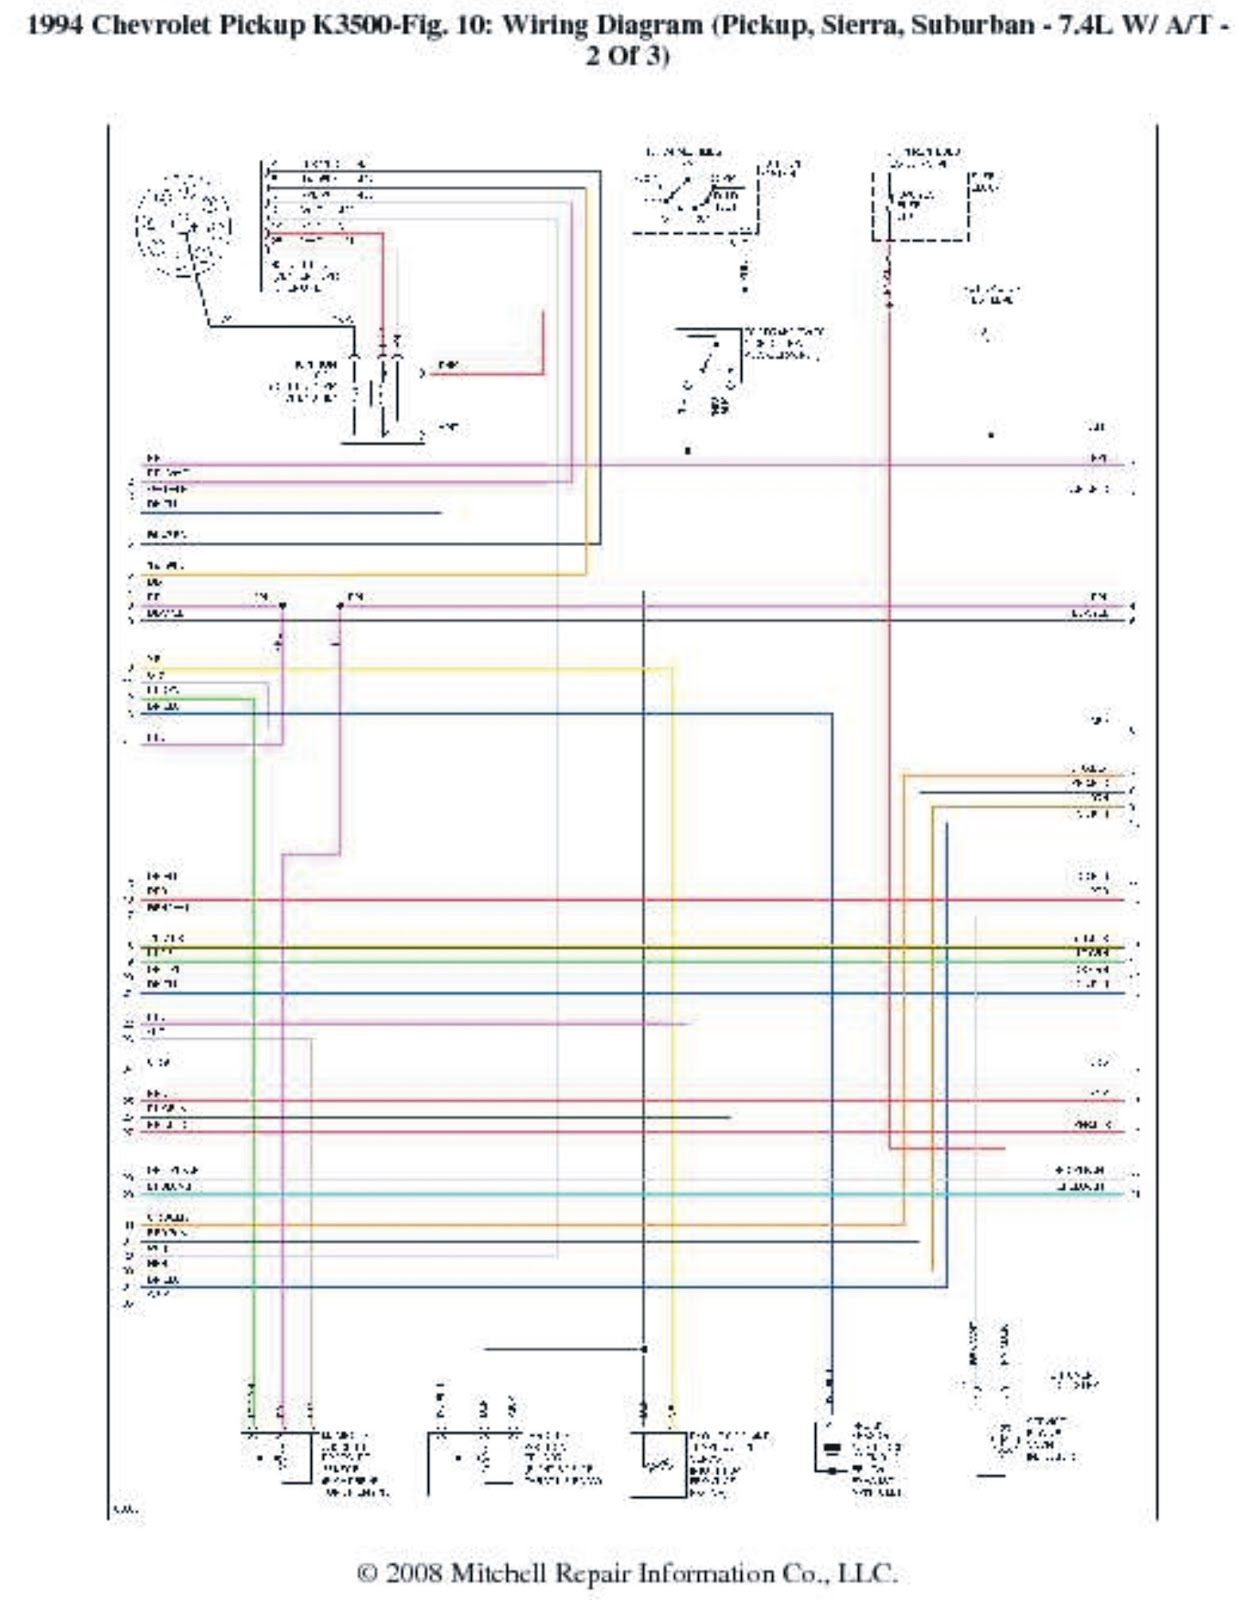 Rf900 Wiring Diagram - Wiring Diagram •